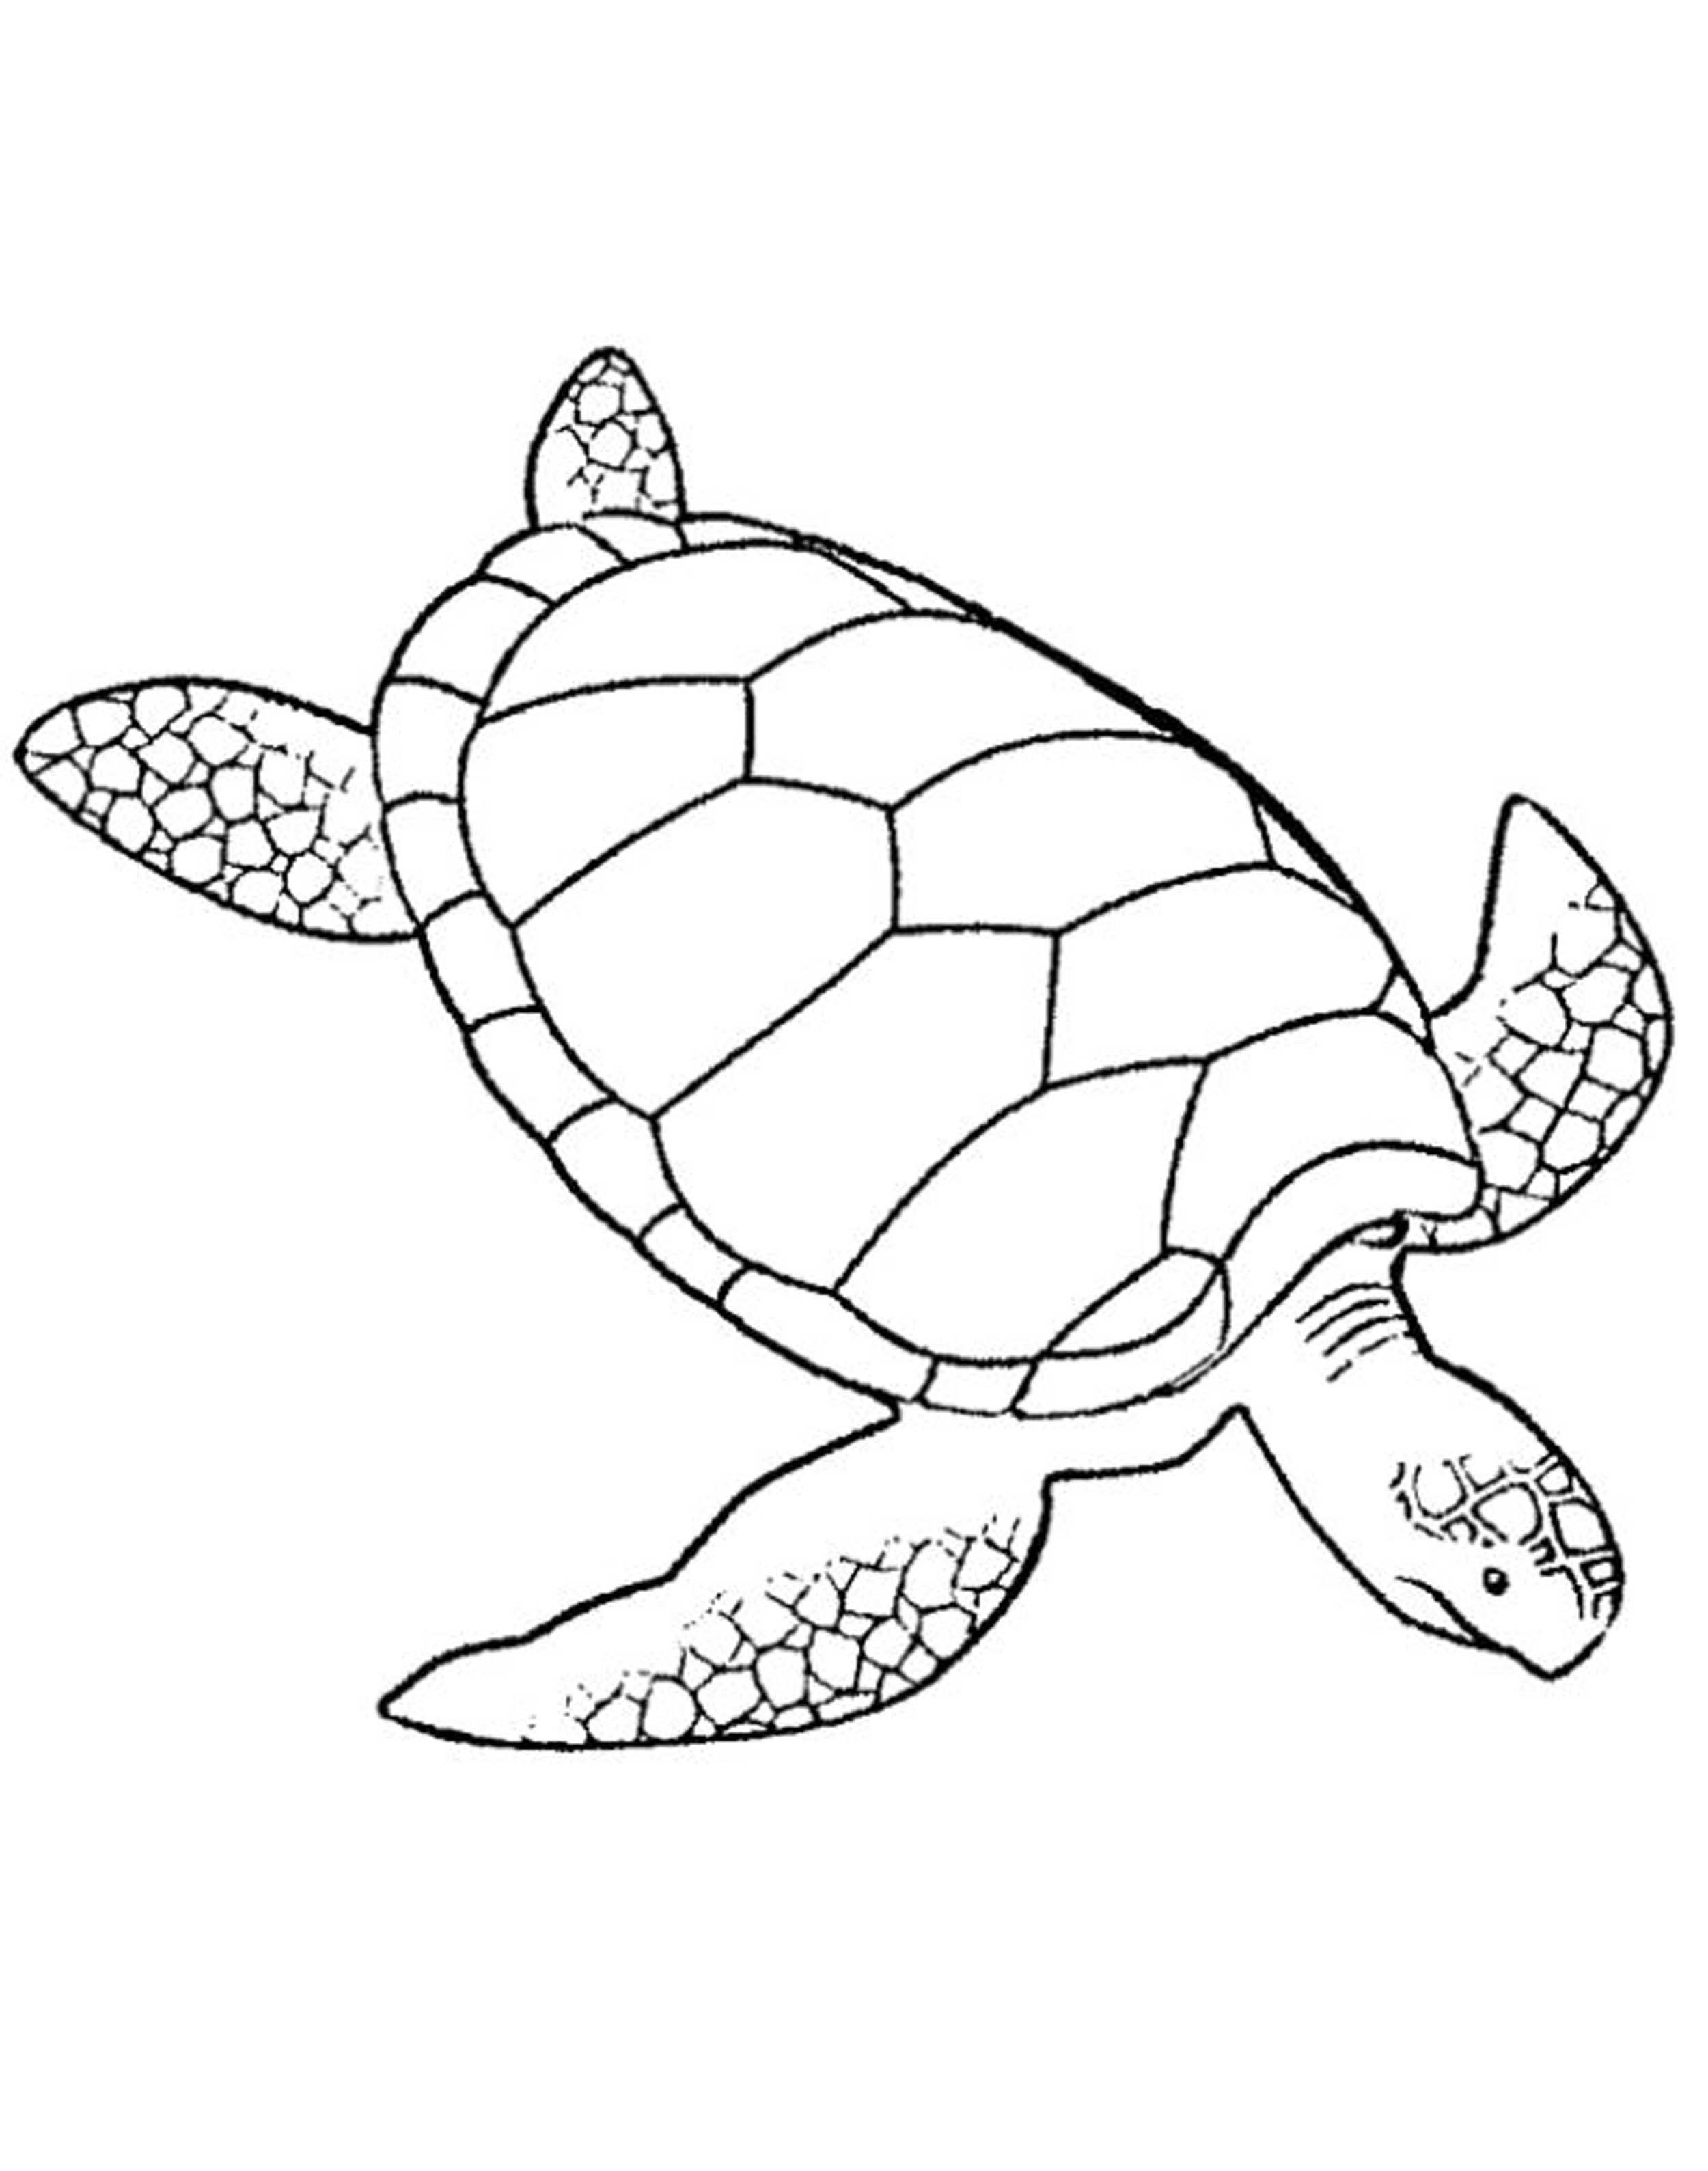 Best ideas about Turtle Coloring Pages For Adults . Save or Pin ADULT COLORING PAGES TURTLE Coloring Home Now.